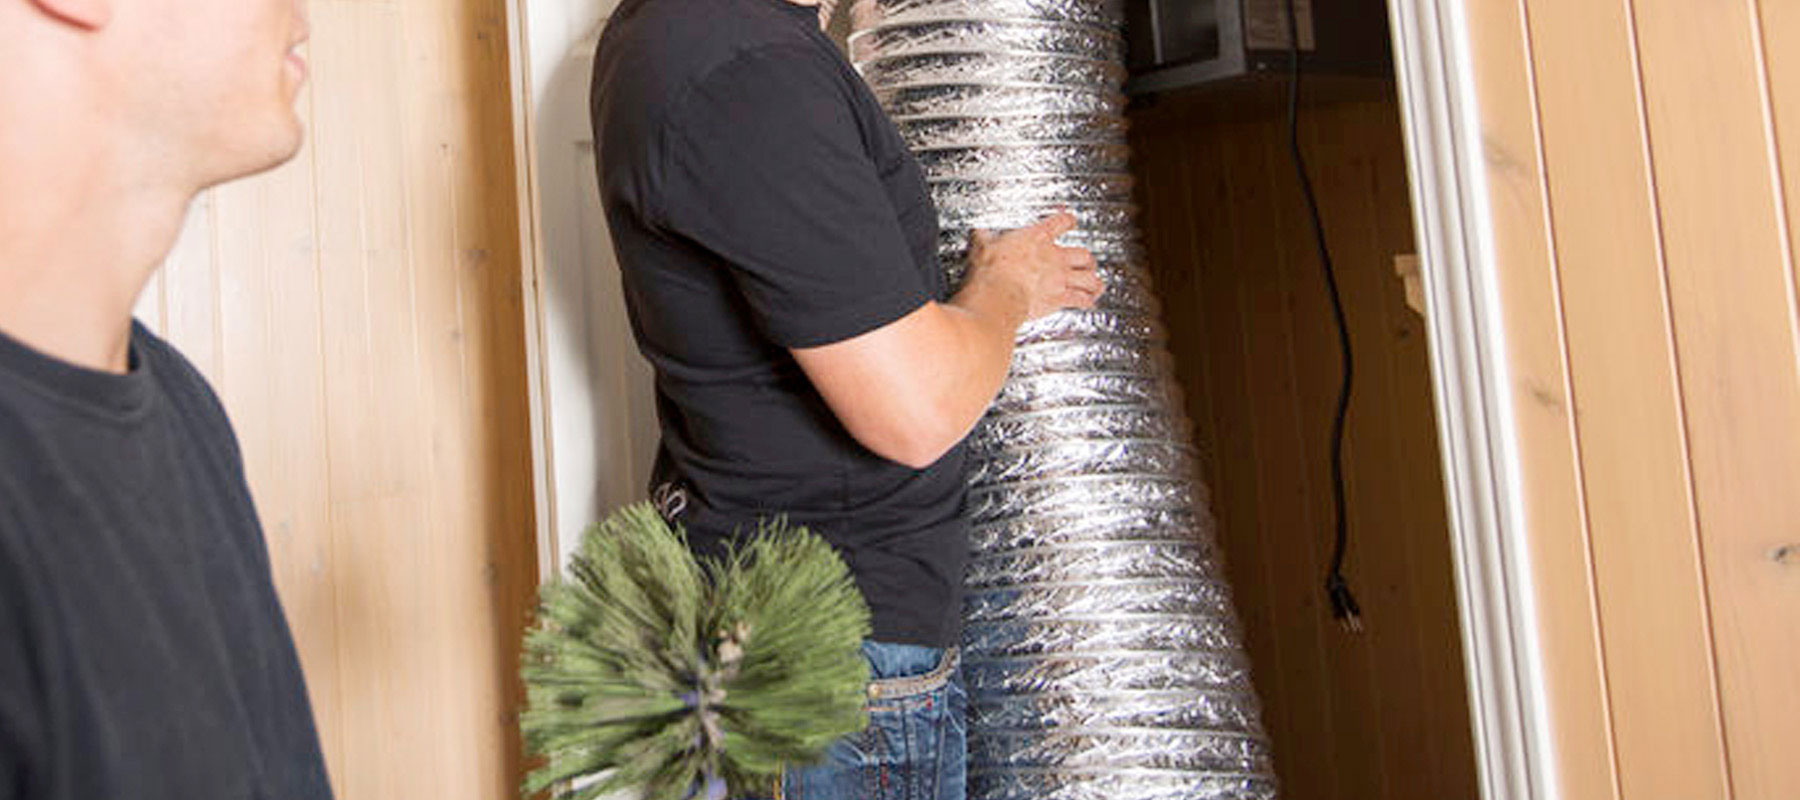 Residential Air Duct Cleaning | Mr Duct Cleaner